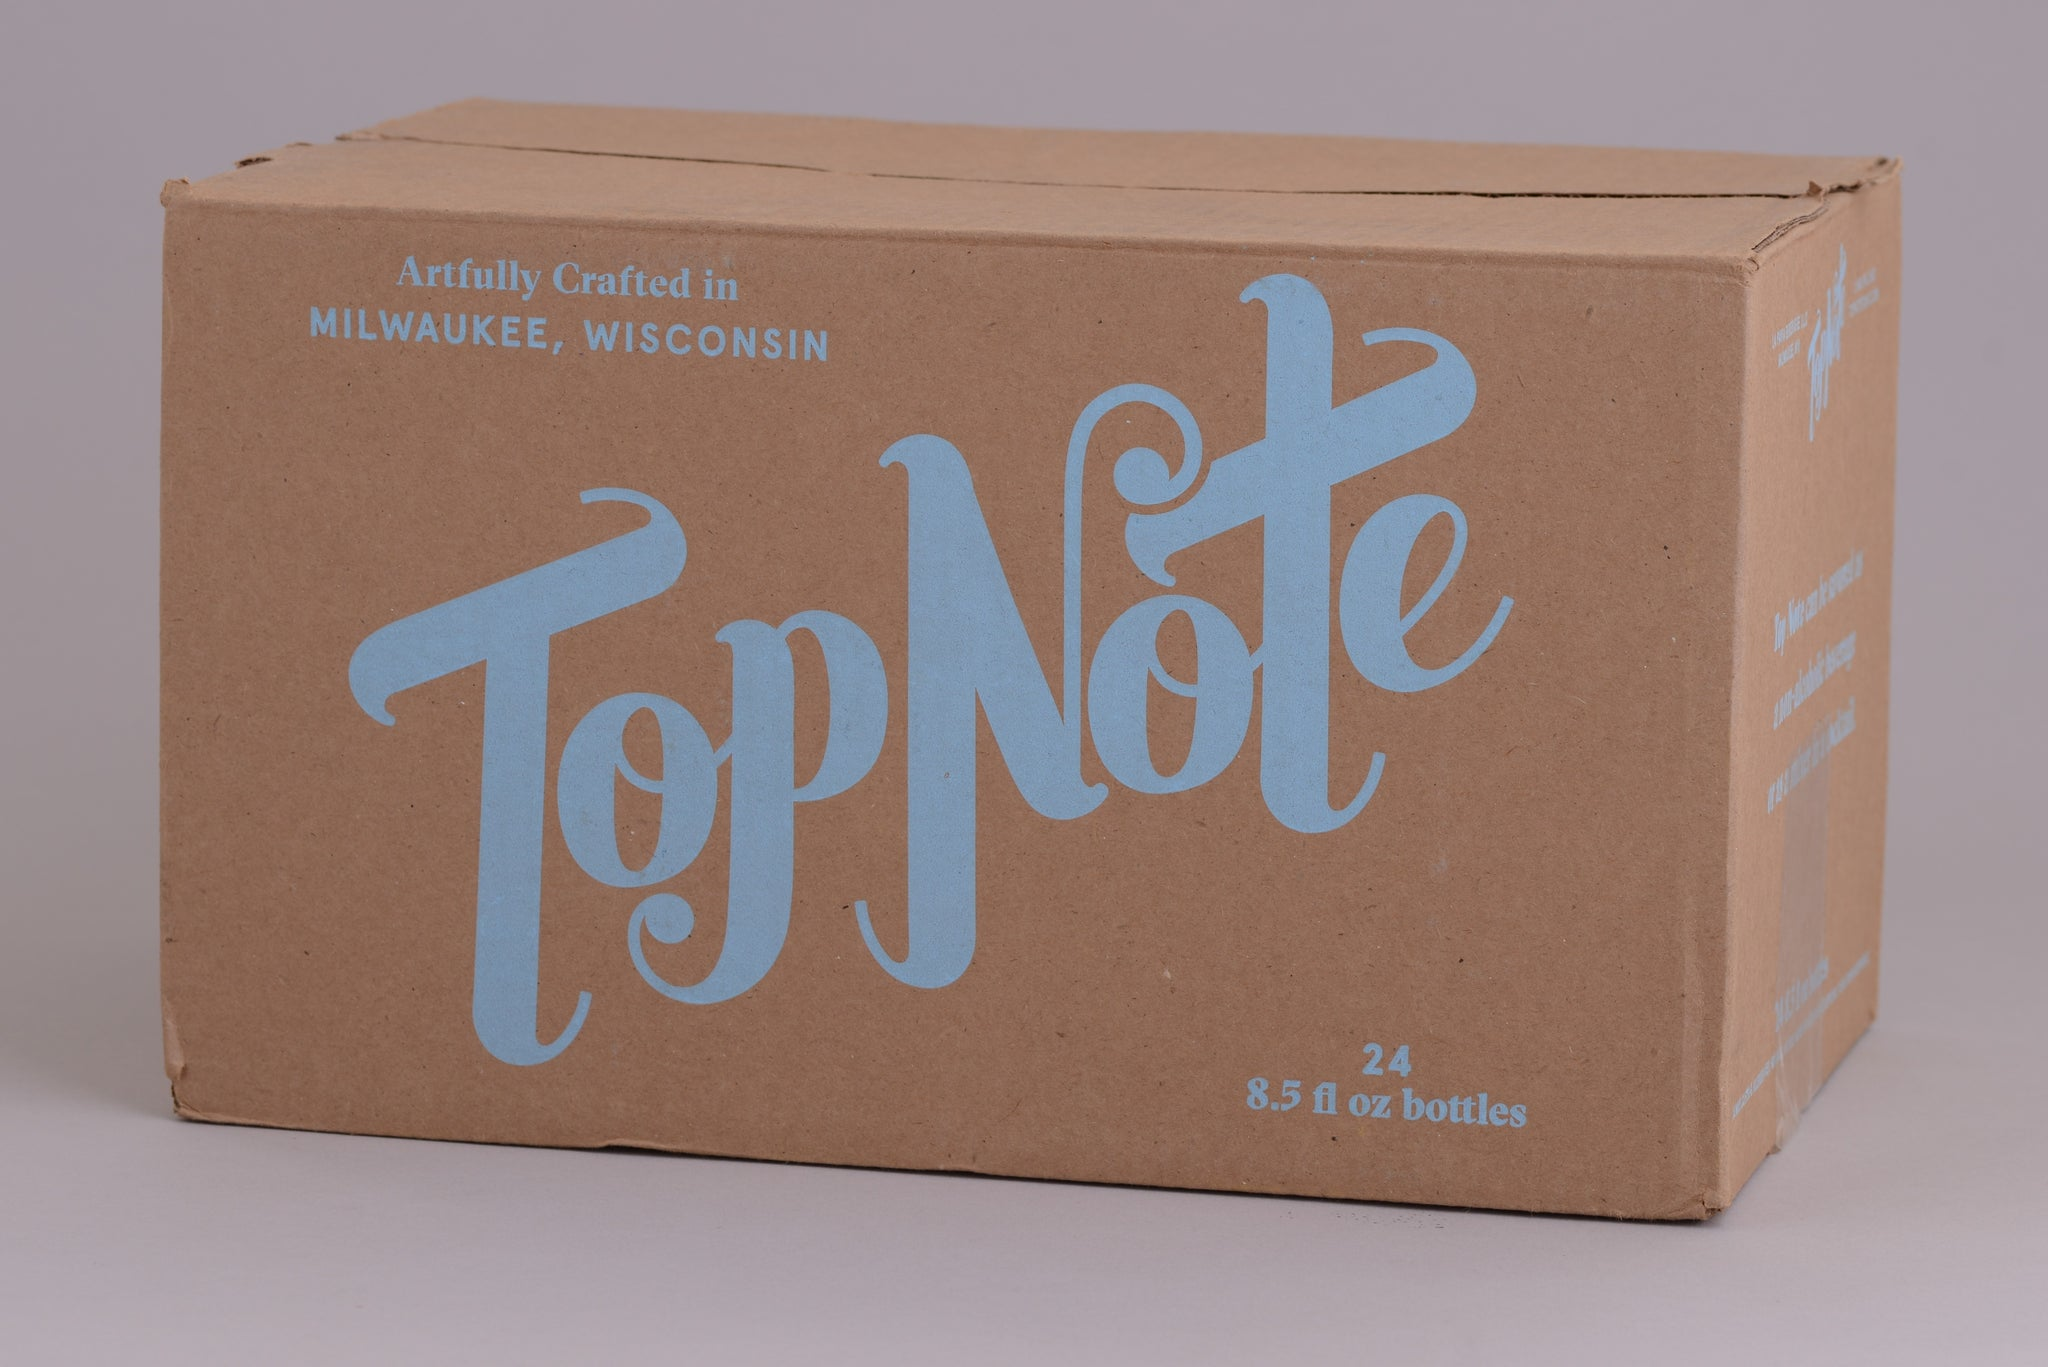 Tonic Water Cases | Top Note Tonic Water – Top Note Tonic Store